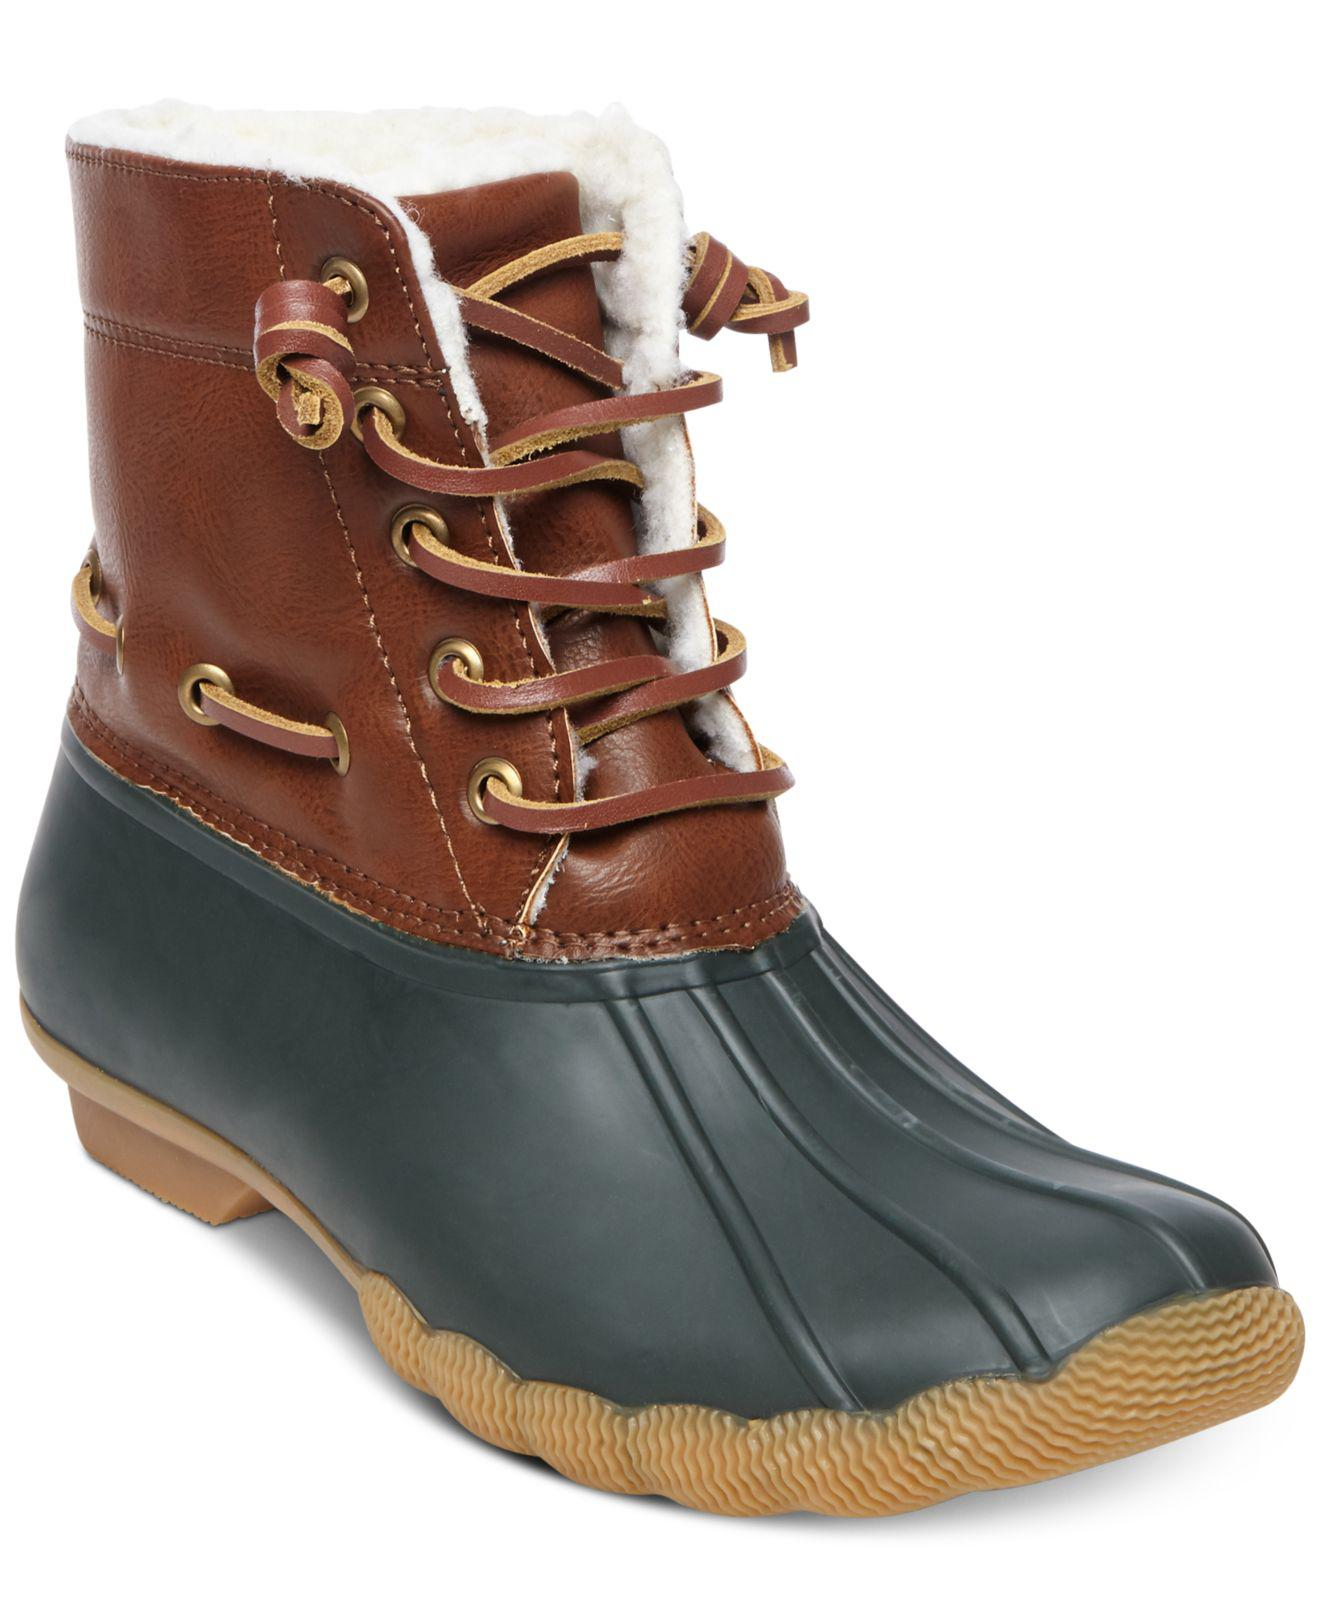 d80b9dd11a7 Gallery. Previously sold at  Macy s · Women s Rain Boots ...